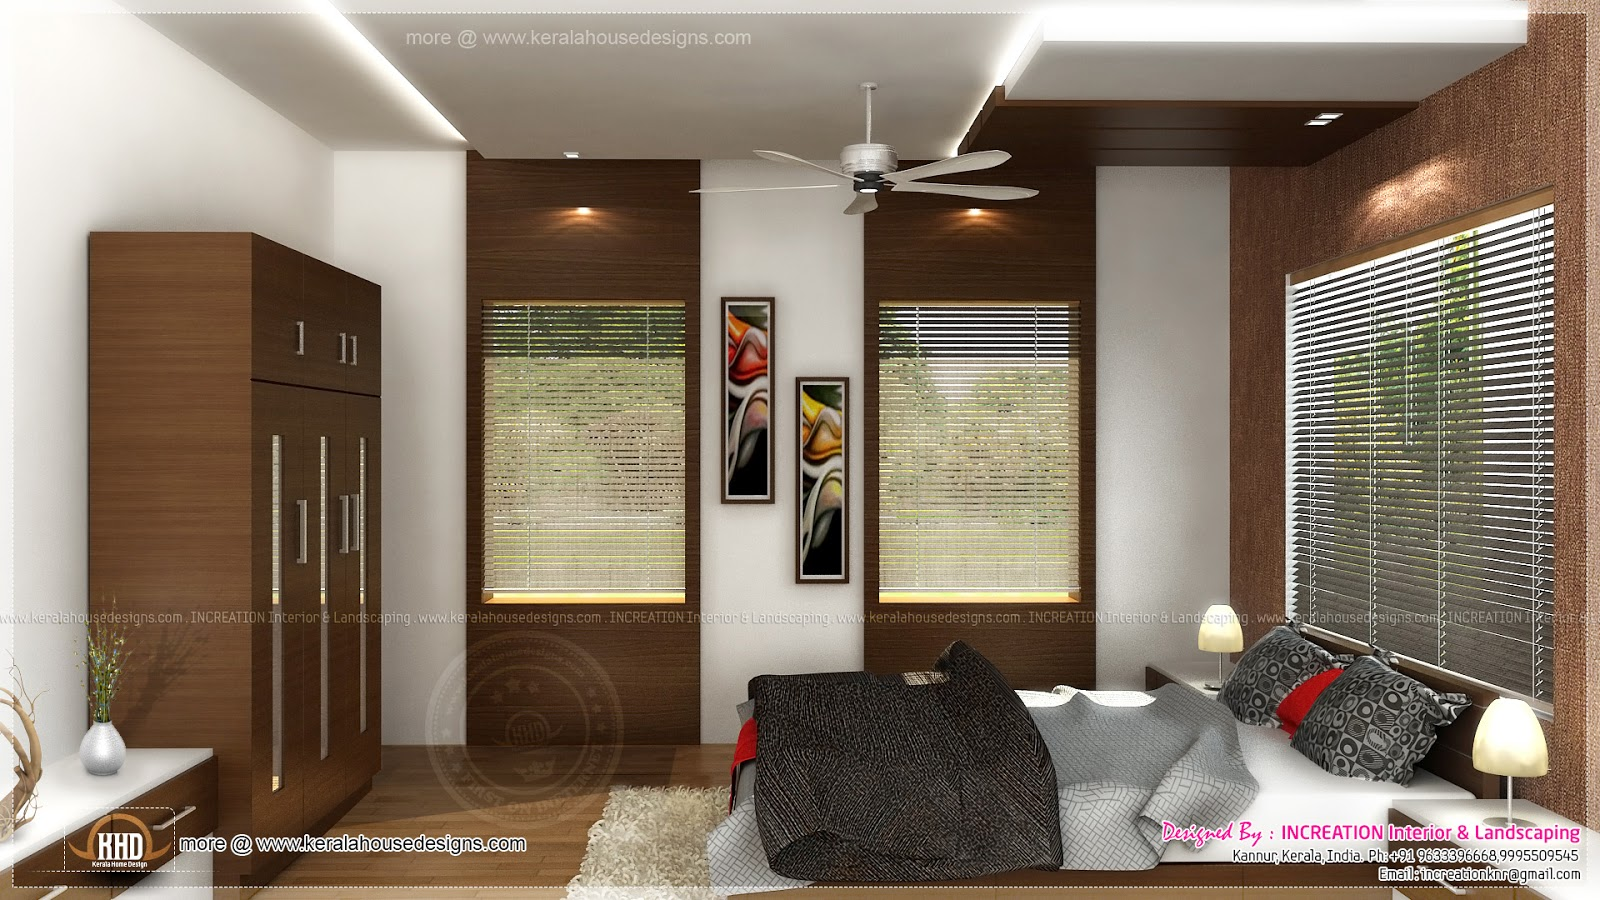 Interior designs from kannur kerala home kerala plans House interior design